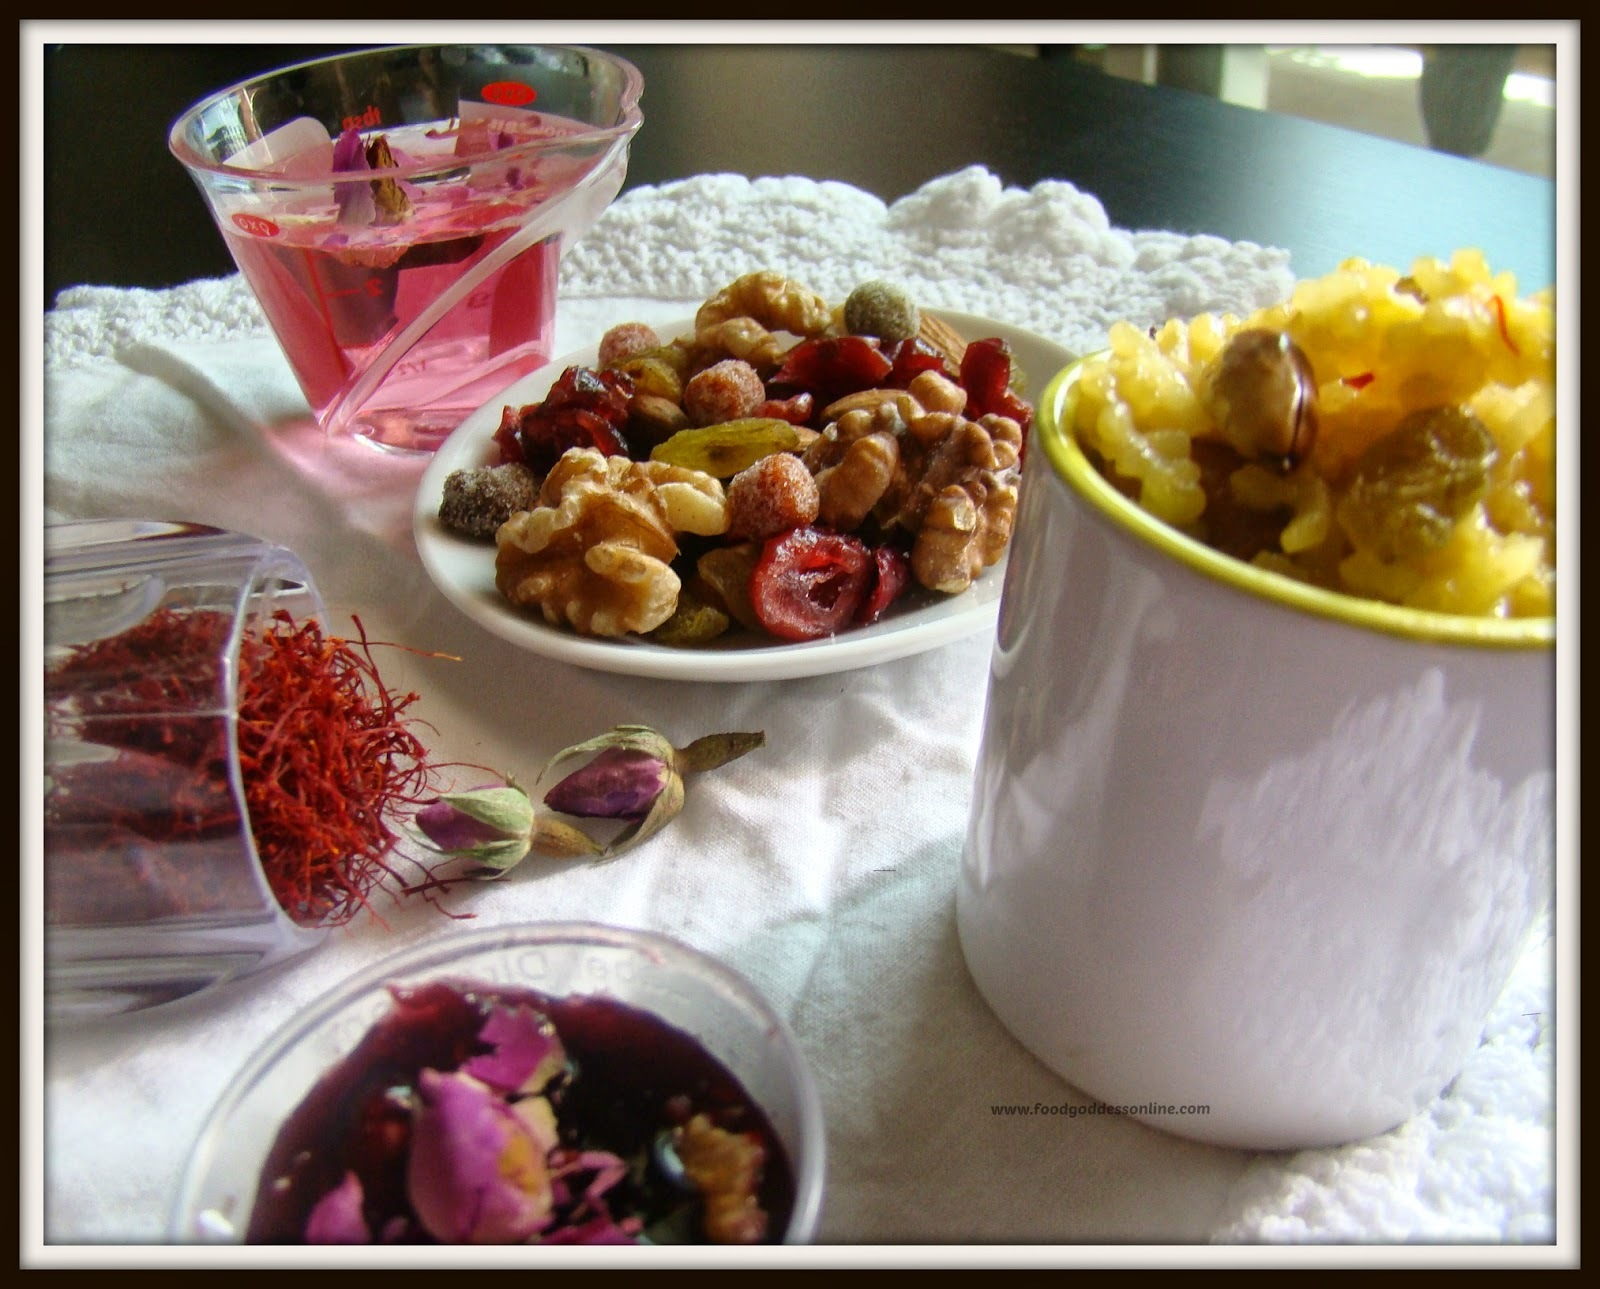 Happy Nuroz - Recipe for zard pulao- gulkhand - rose sherbet/rose petal cordial